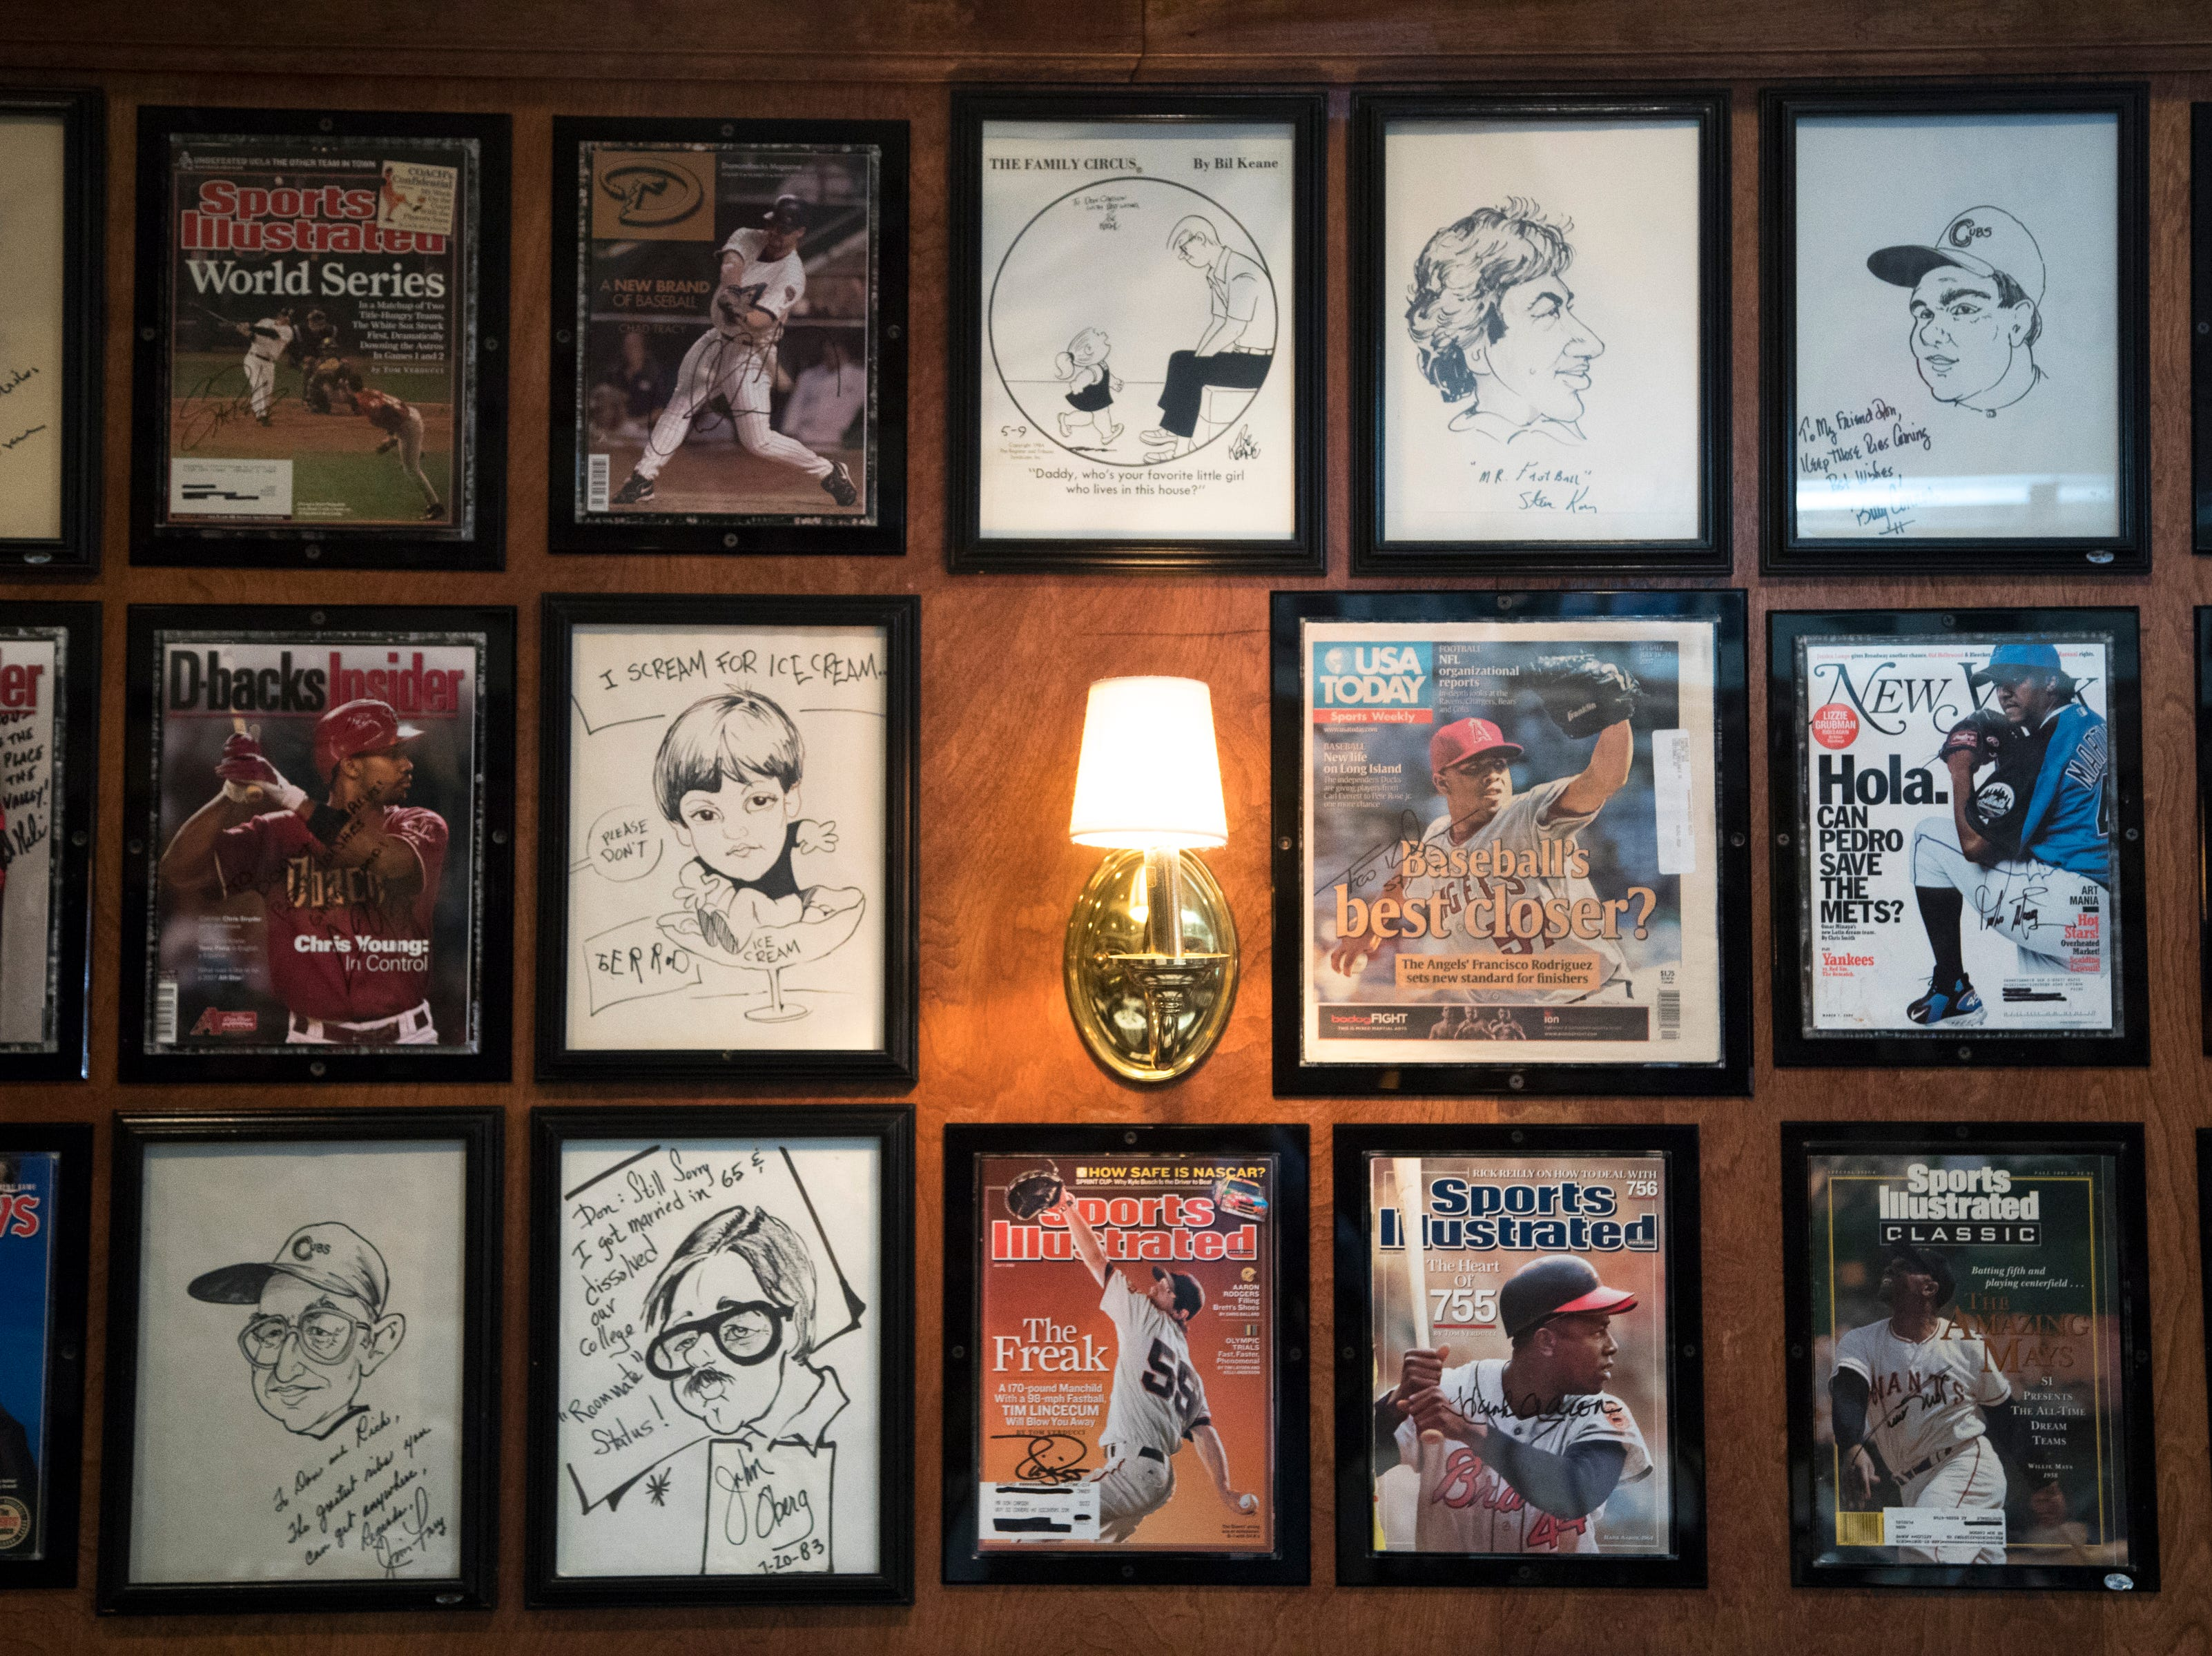 Magazine covers and caricatures are seen Feb. 27, 2019, at Don & Charlie's, 7501 E. Camelback Road, Scottsdale.